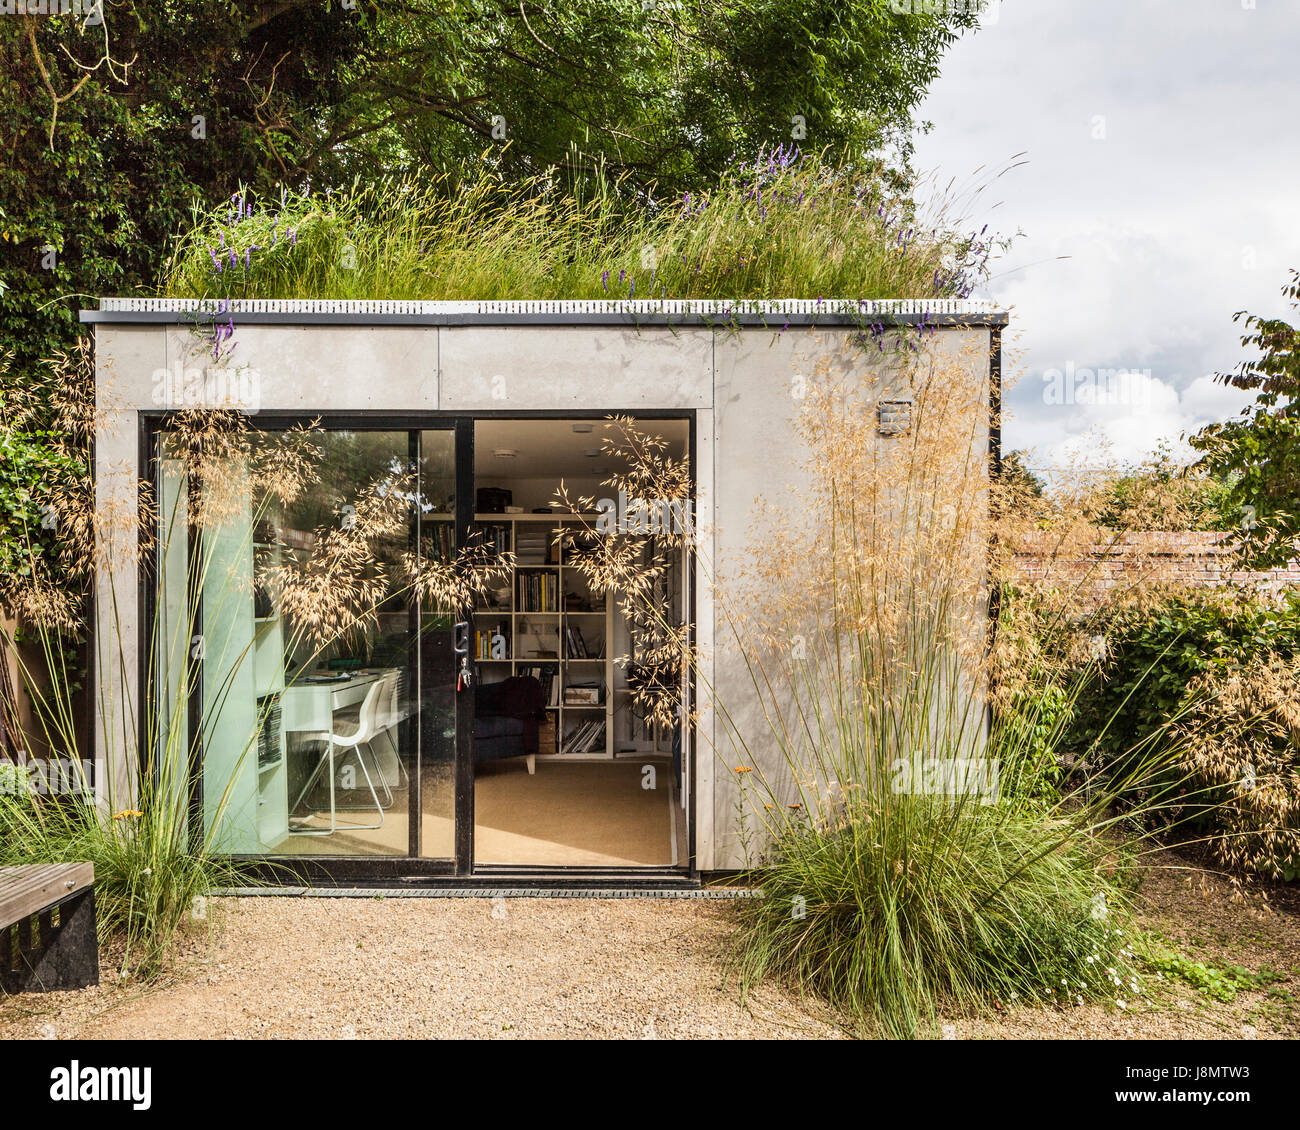 office garden shed. Garden Shed - Office. Elmthorpe Road, Oxford, United Kingdom. Architect: Waind Gohil + Potter Architects, 2014. Office S